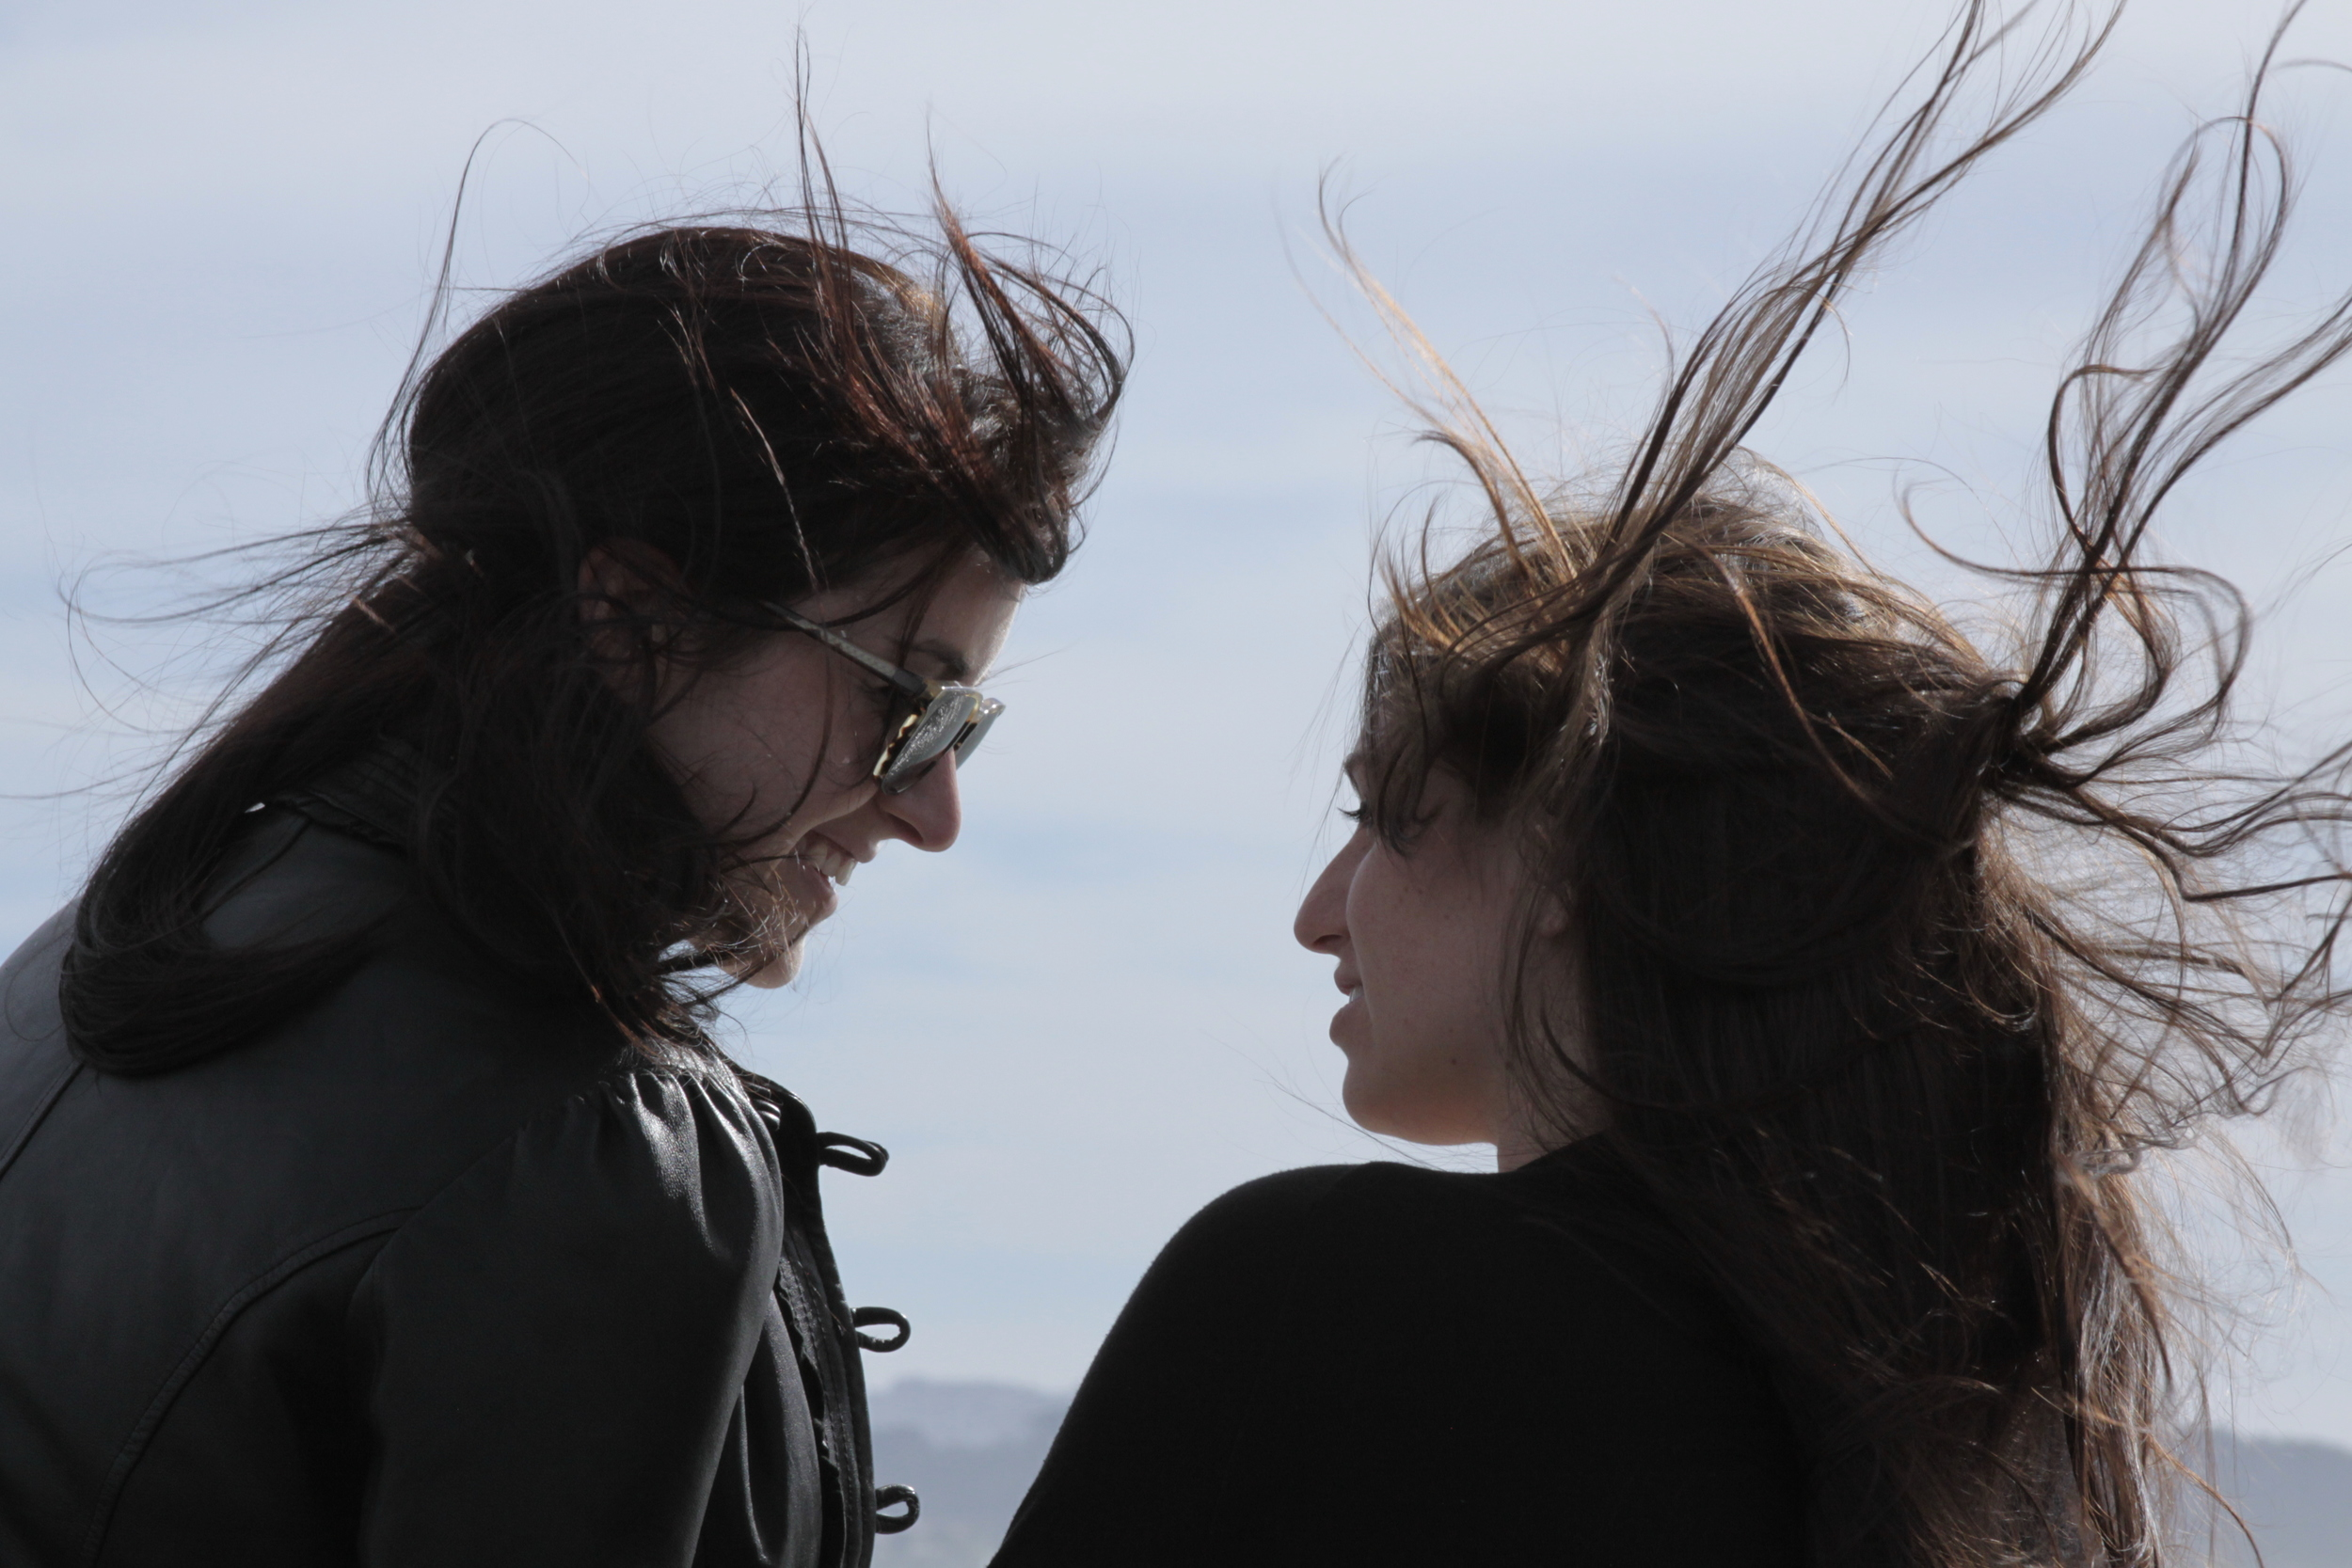 It was windy in San Francisco, coming back on the ferry from Sausalito. How does it feel to almost take off, hairs flying in the wind?